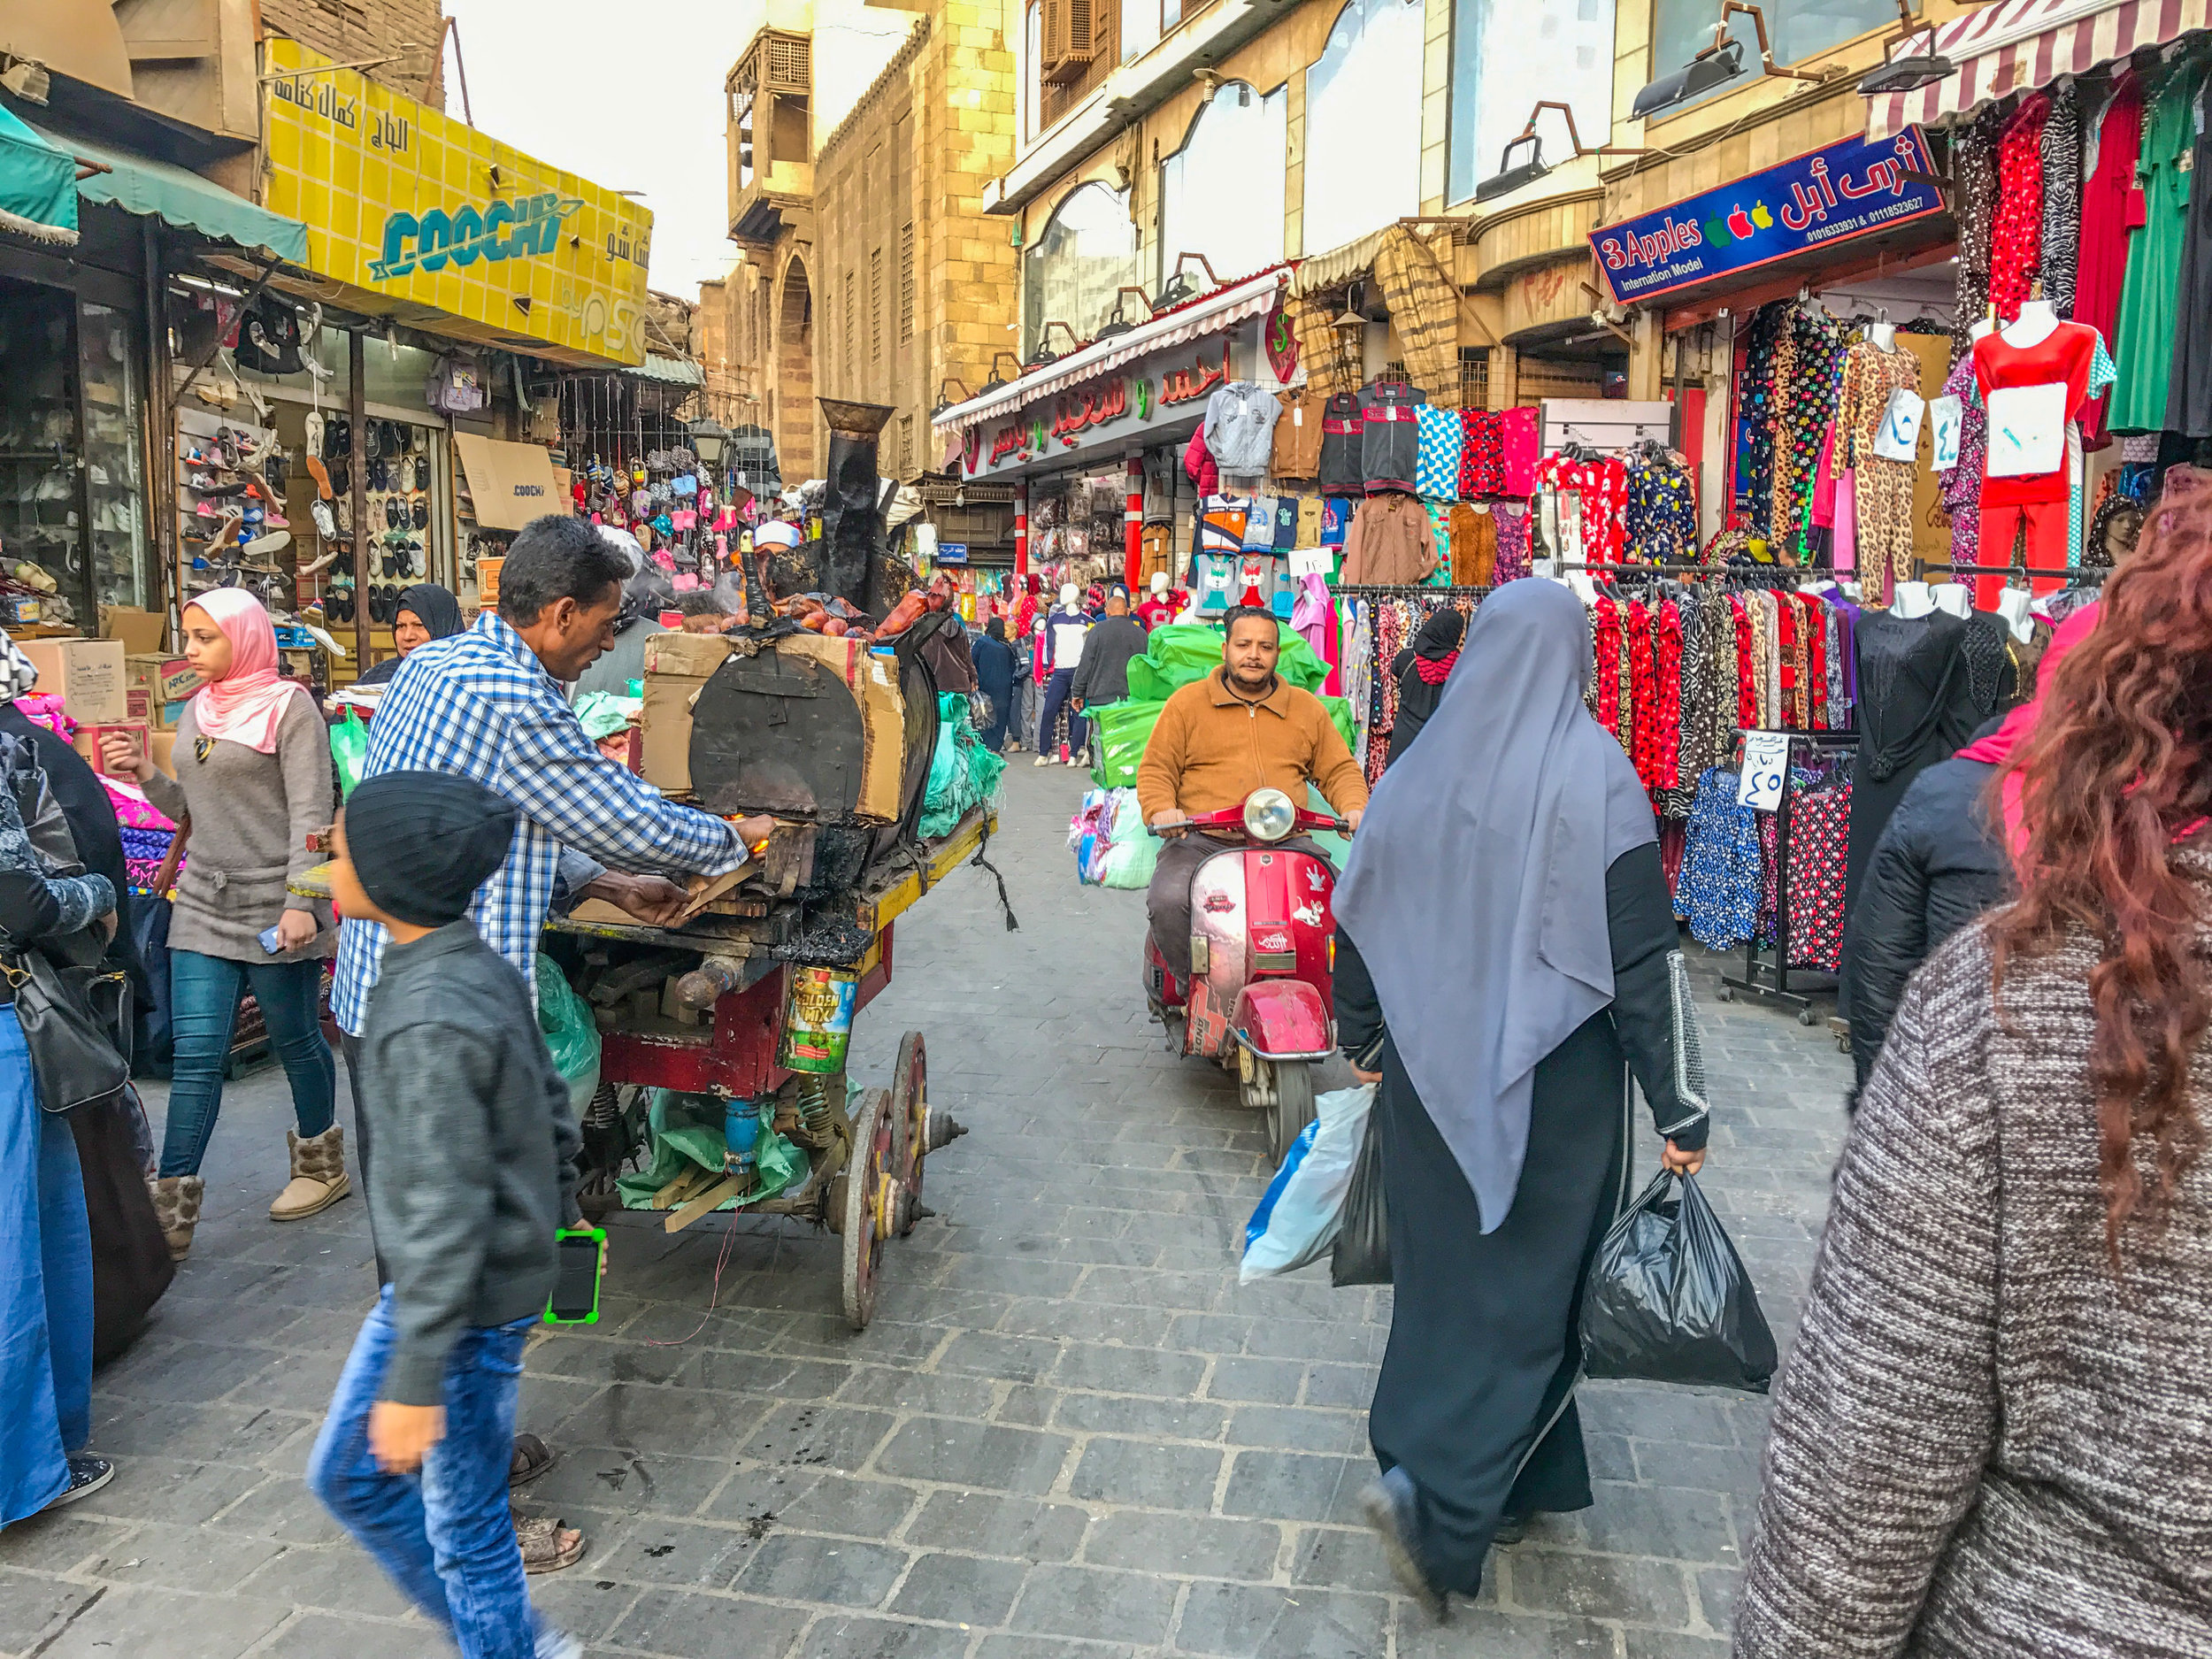 Bustling Cairo